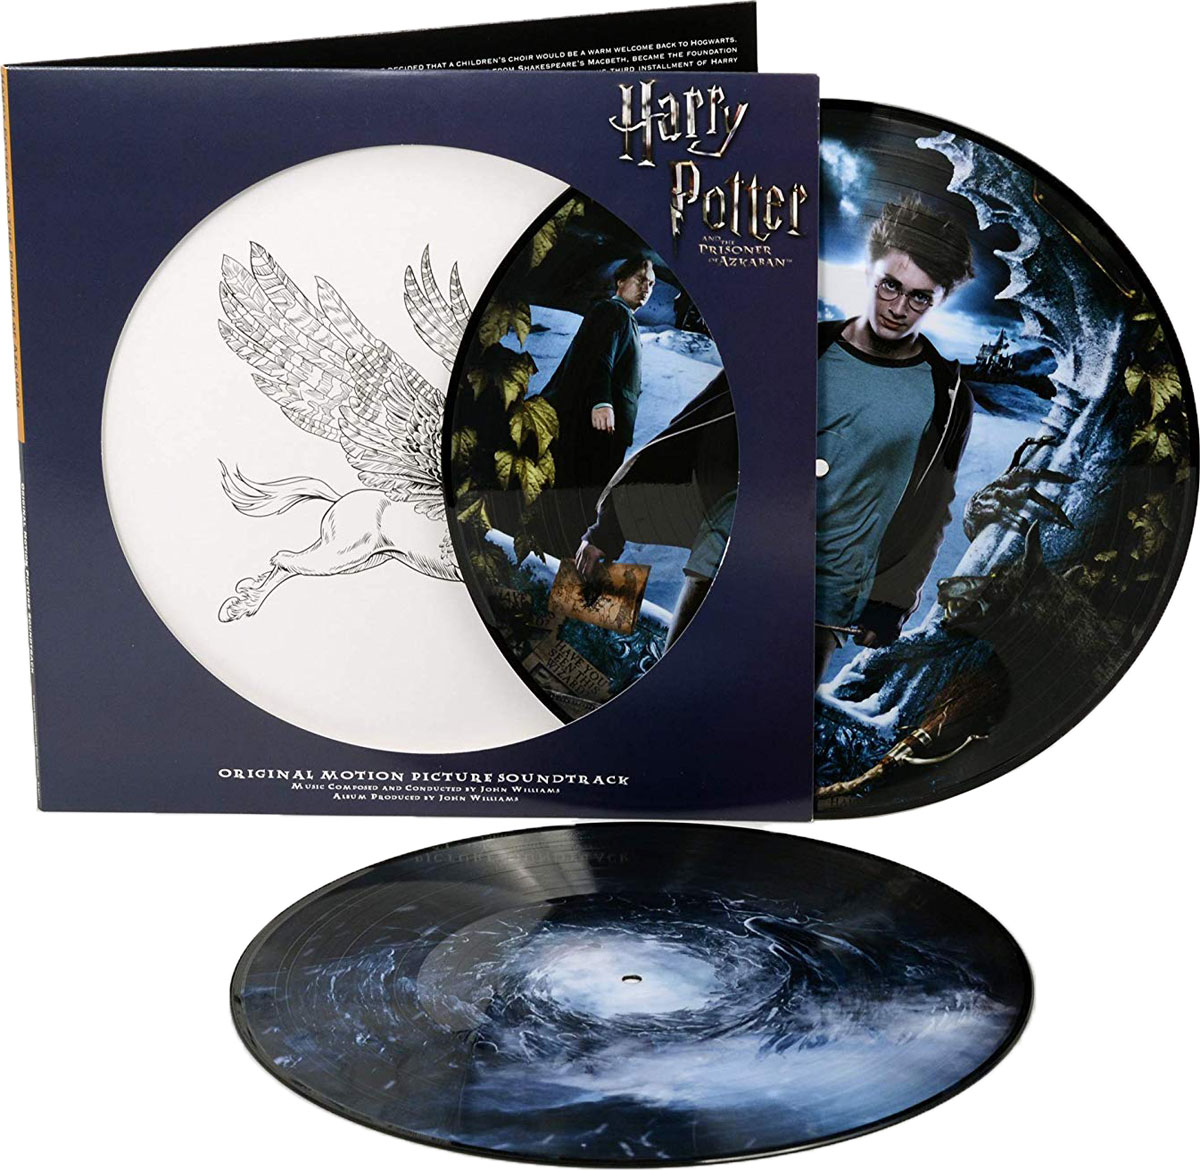 Harry Potter And The Prisoner Of Azkaban. Original Motion Picture Soundtrack (2 LP) butch tavares adi armour the o jays brawl in cell block 99 original motion picture soundtrack lp